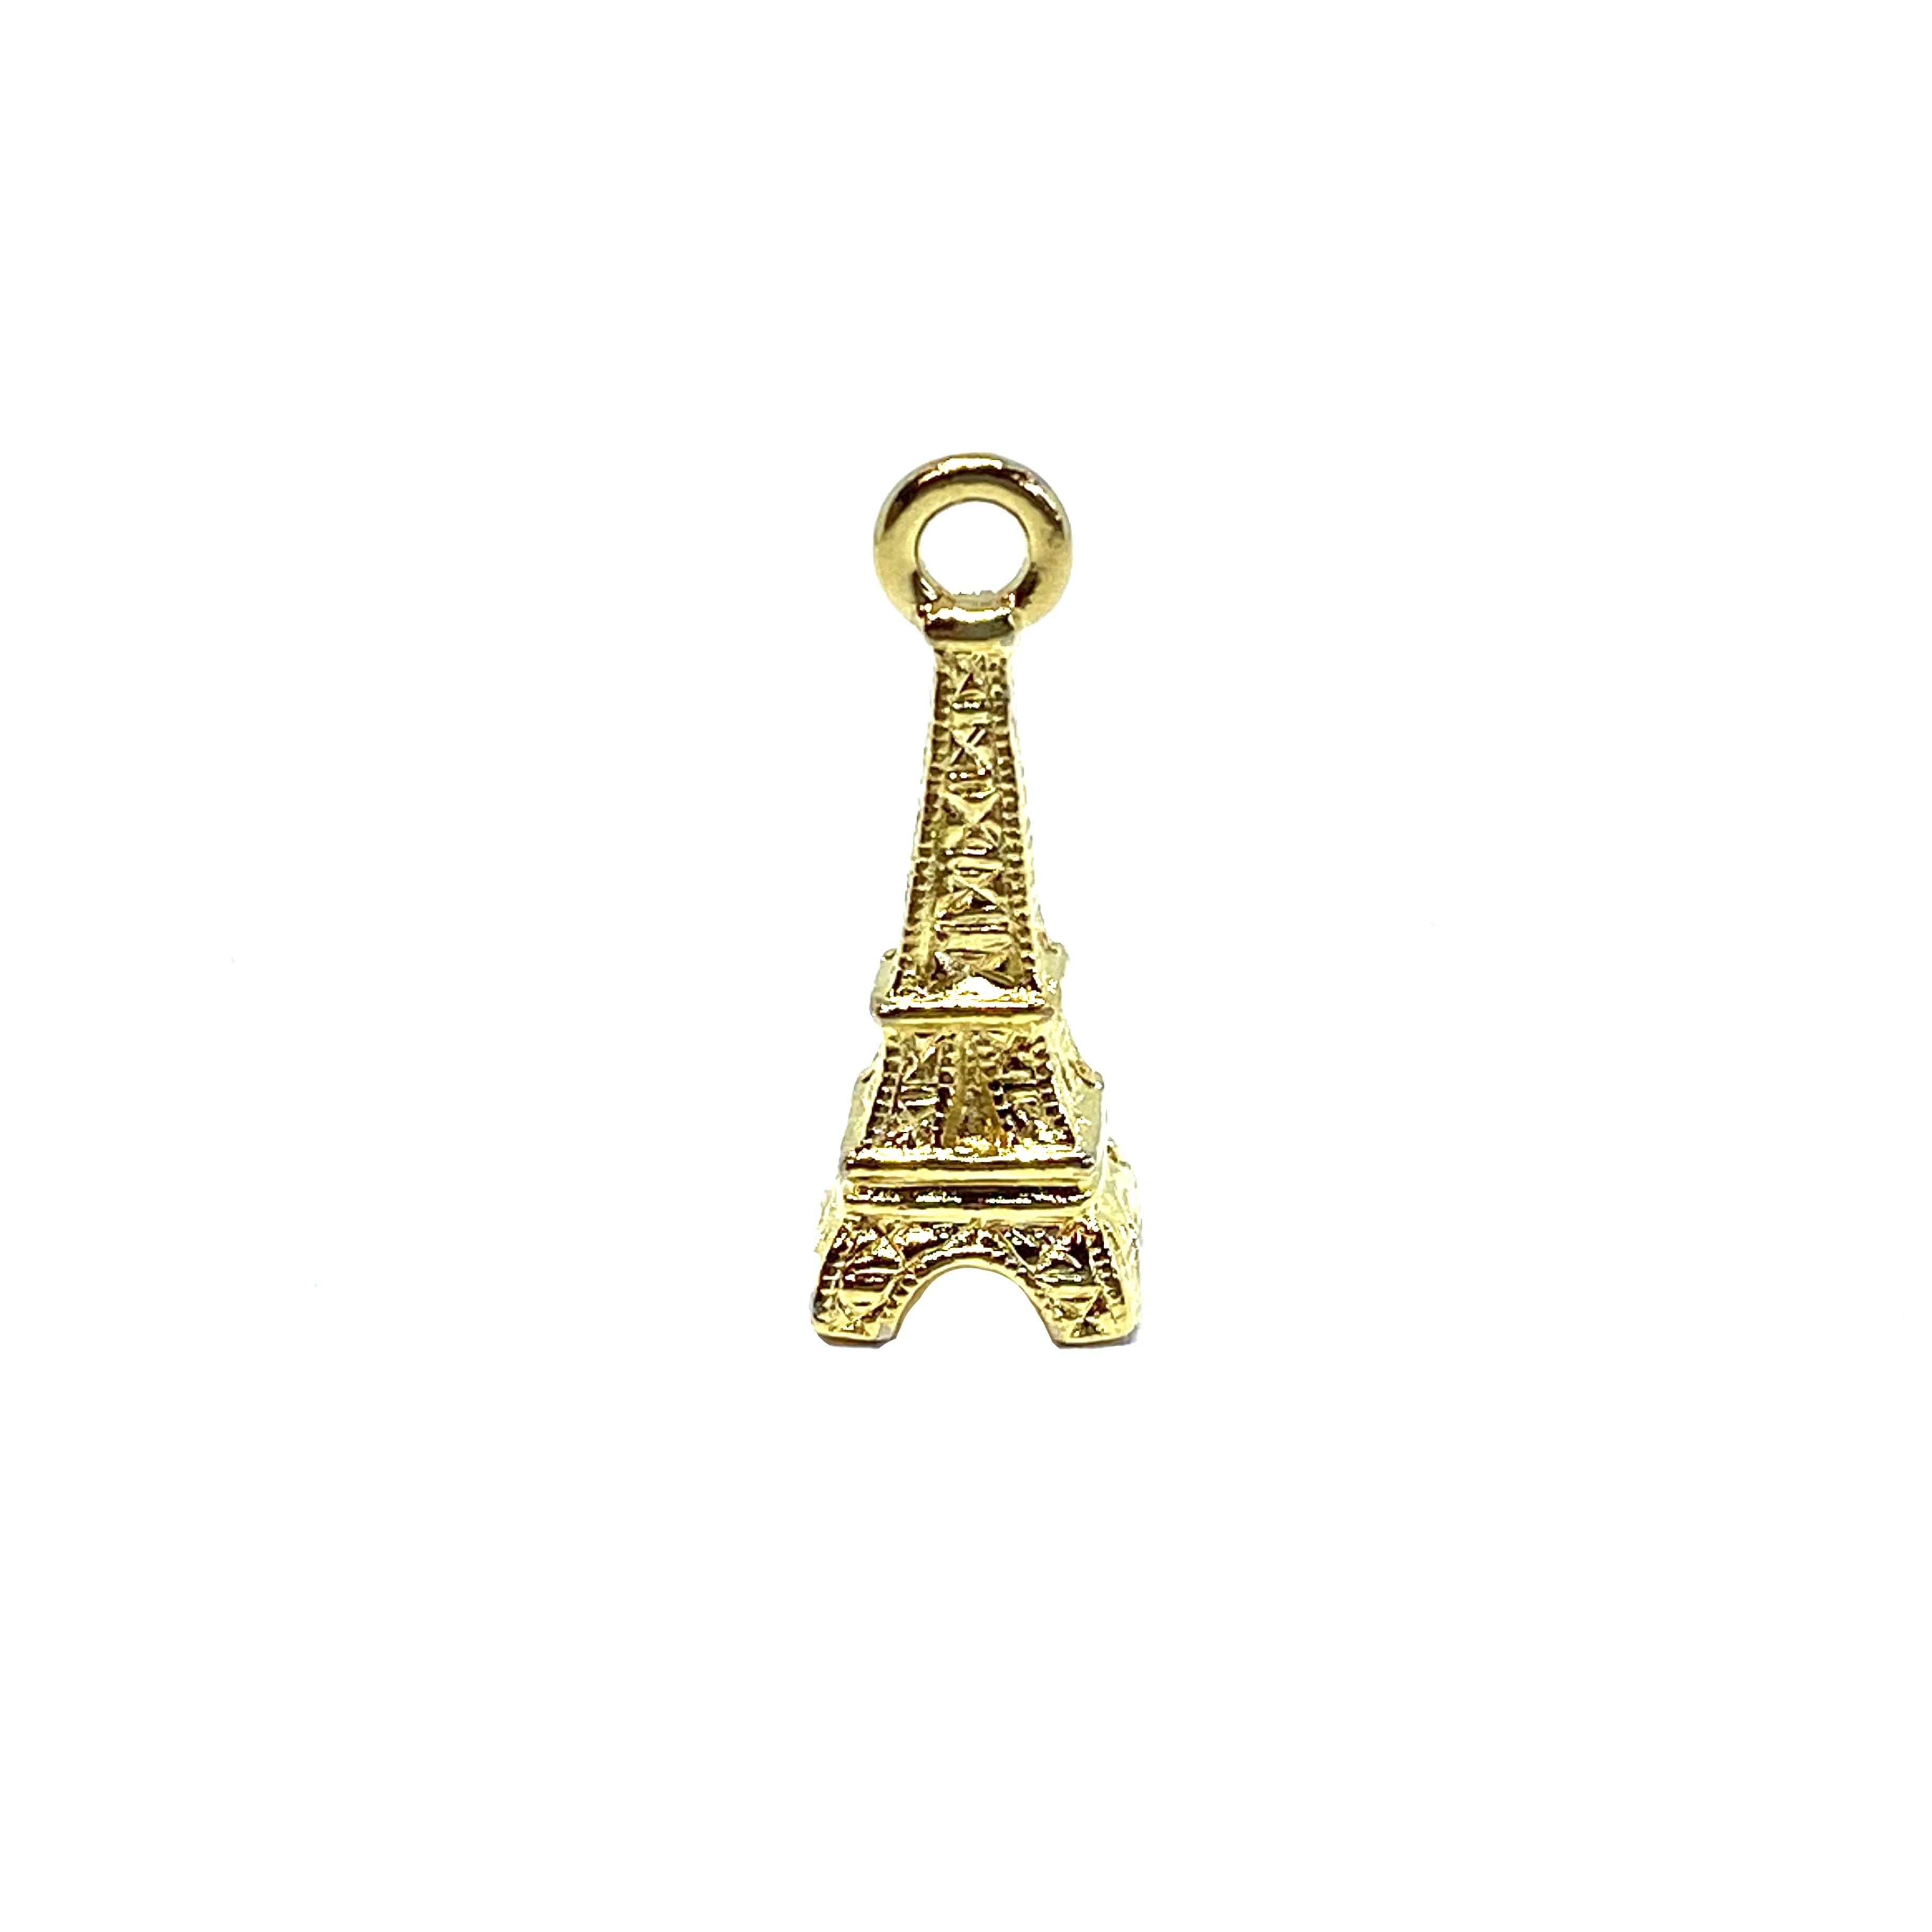 French charms, Eiffel tower, lead free pewter castings, B'sue by 1928, 1928 Company, designer jewelry findings, vintage jewelry parts, 1928 Jewelry, plated pewter, filigree, B'sue Boutiques, 22K gold finish, made in the USA, 01620